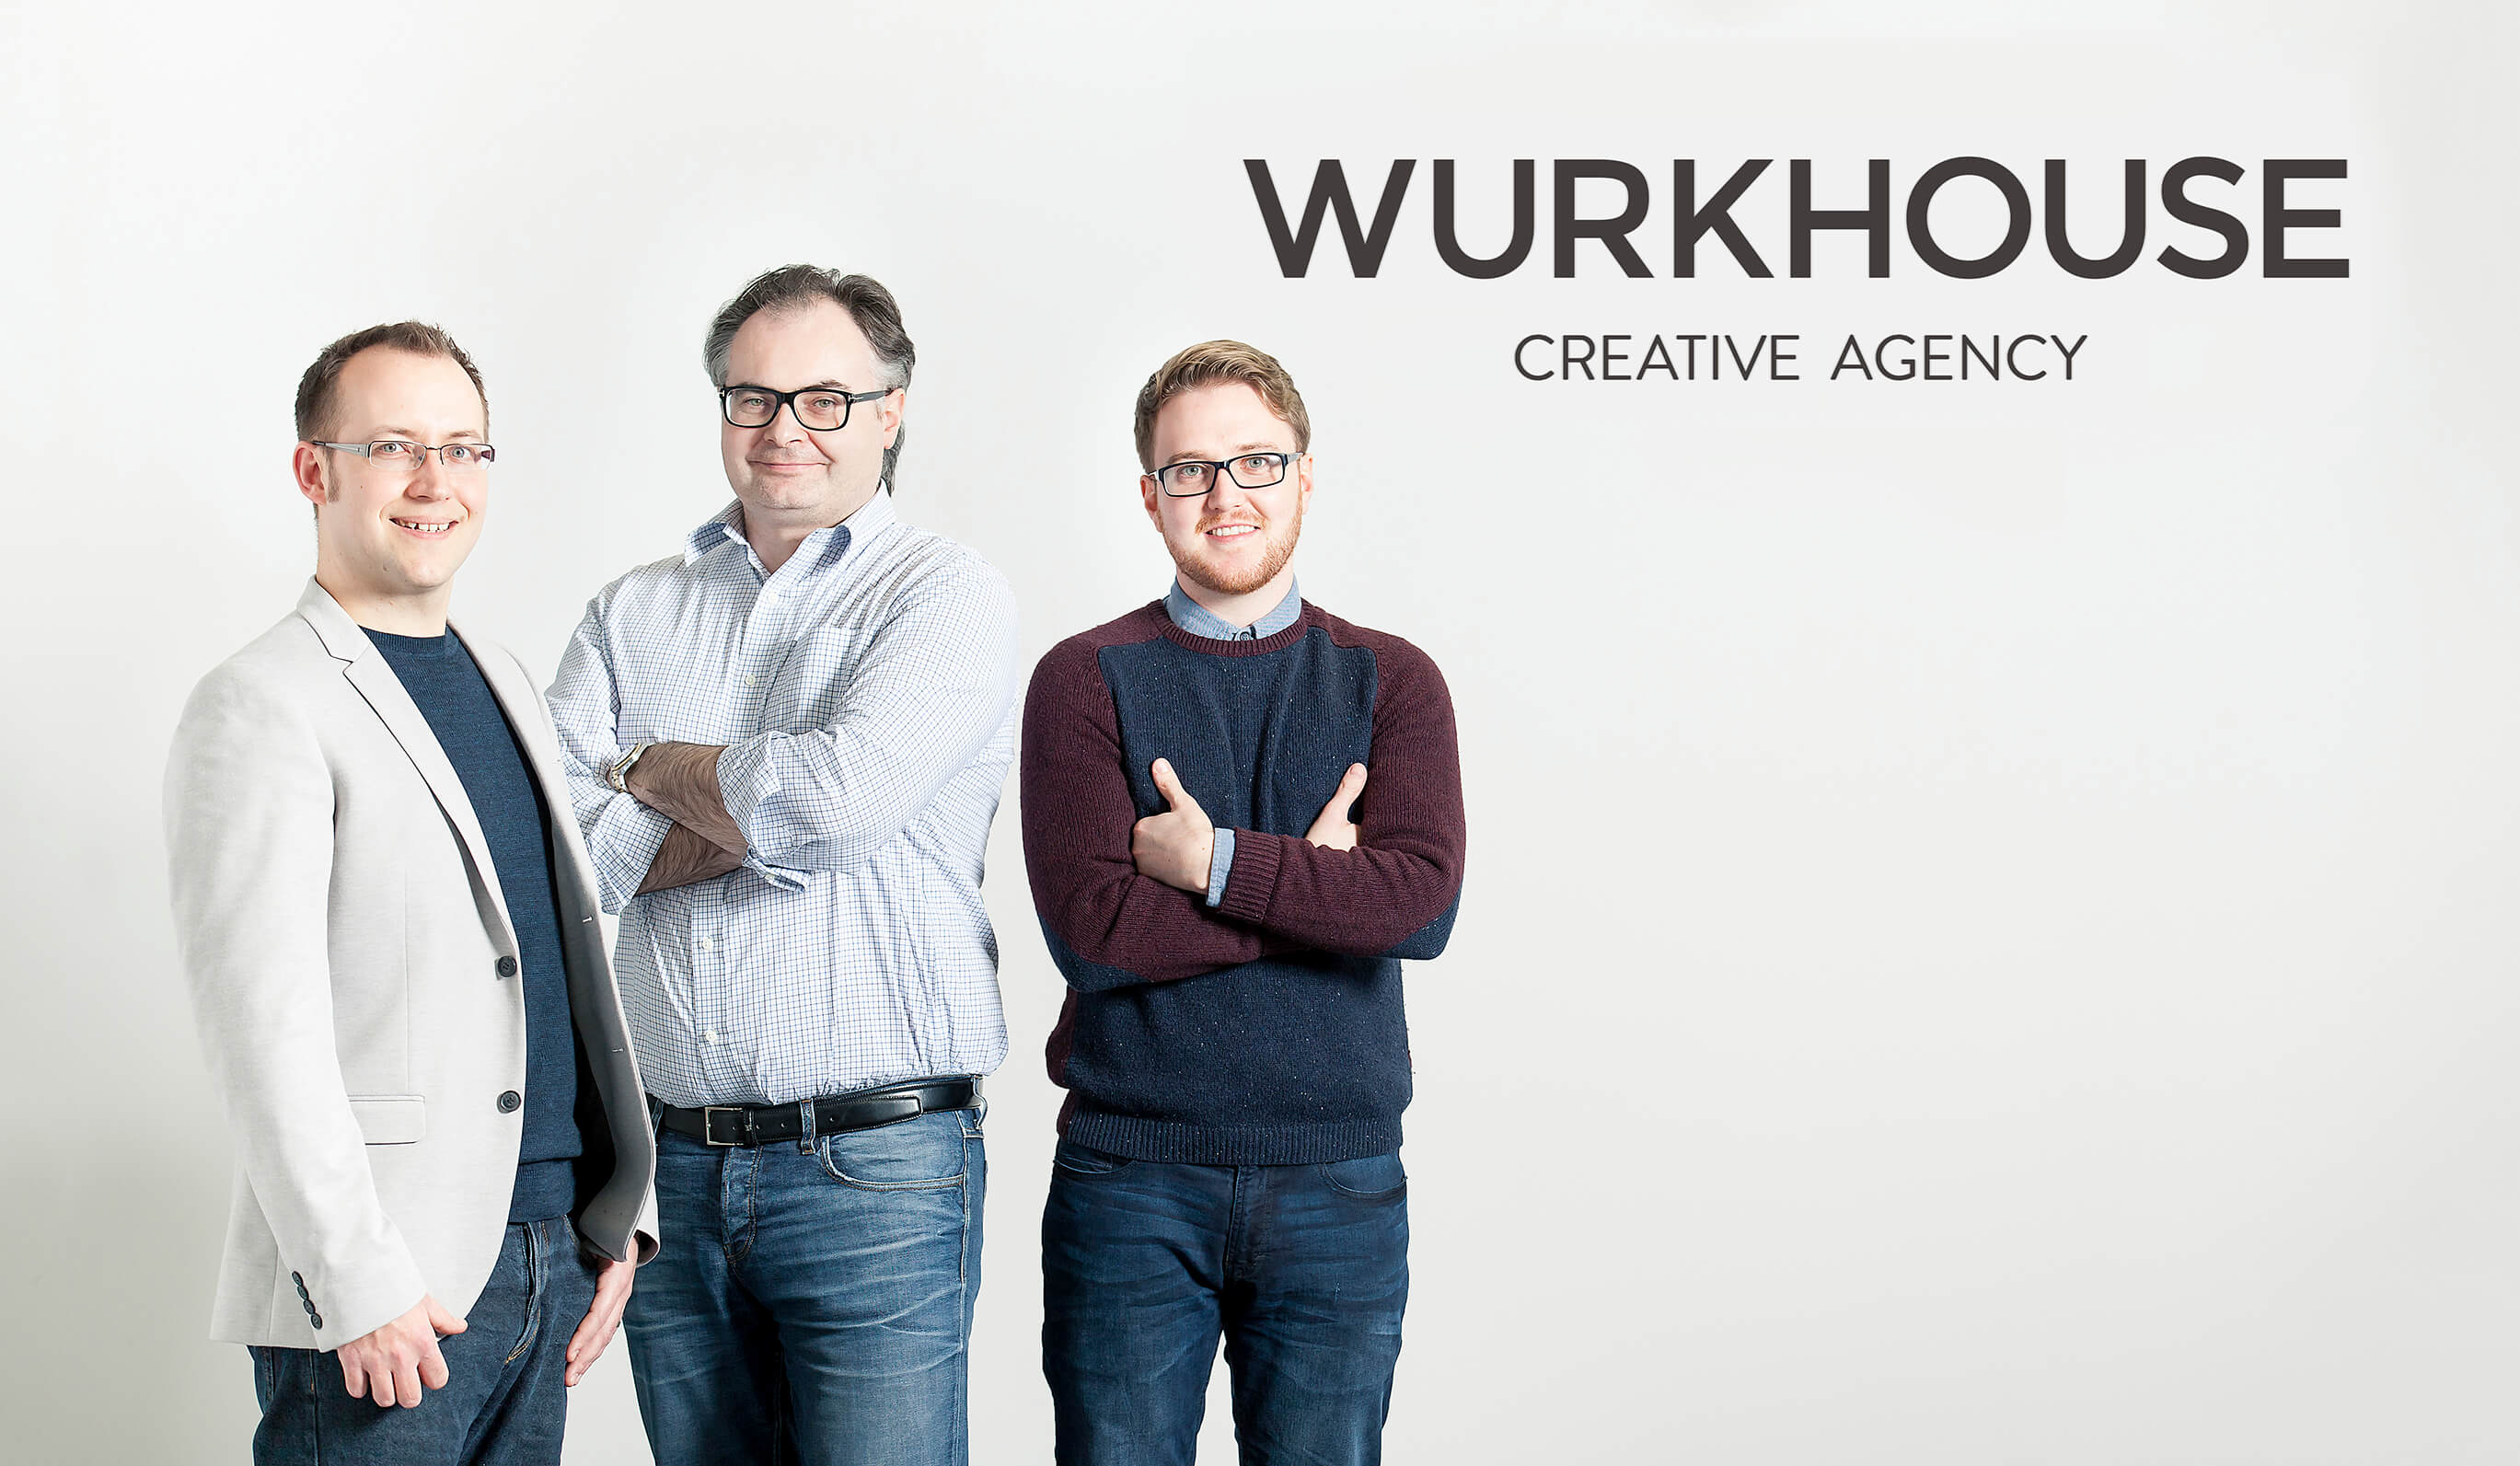 TWO LEADING CREATIVE COMPANIES BASED IN DERRY HAVE JOINED FORCES AS PART OF A GLOBAL EXPANSION BY WURKHOUSE.jpg